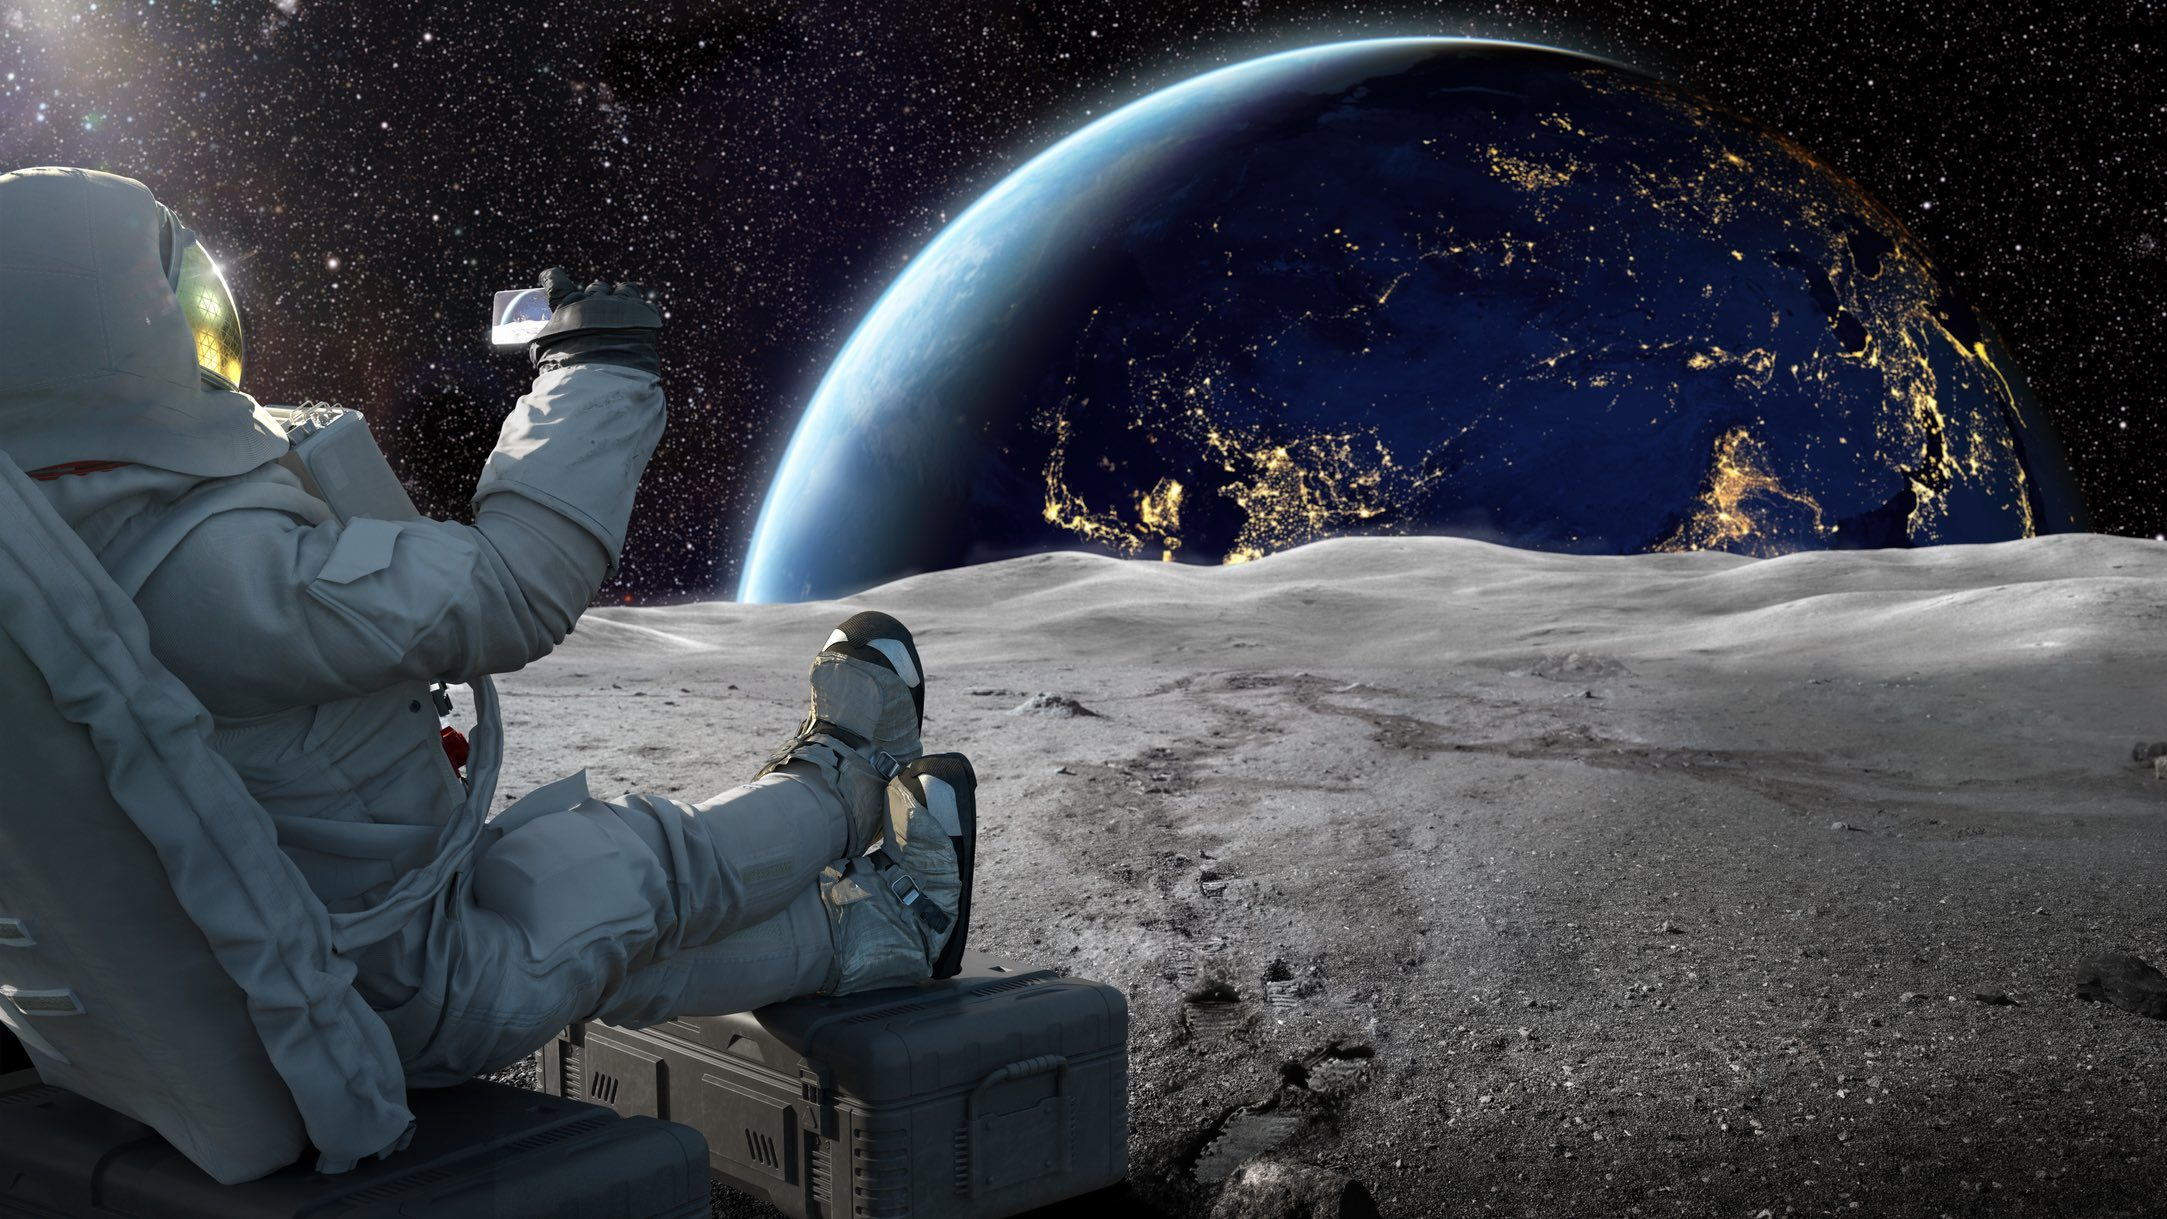 Astronaut sitting on moon, taking a photo of the Earth as a space tourist without appropriate travel insurance.